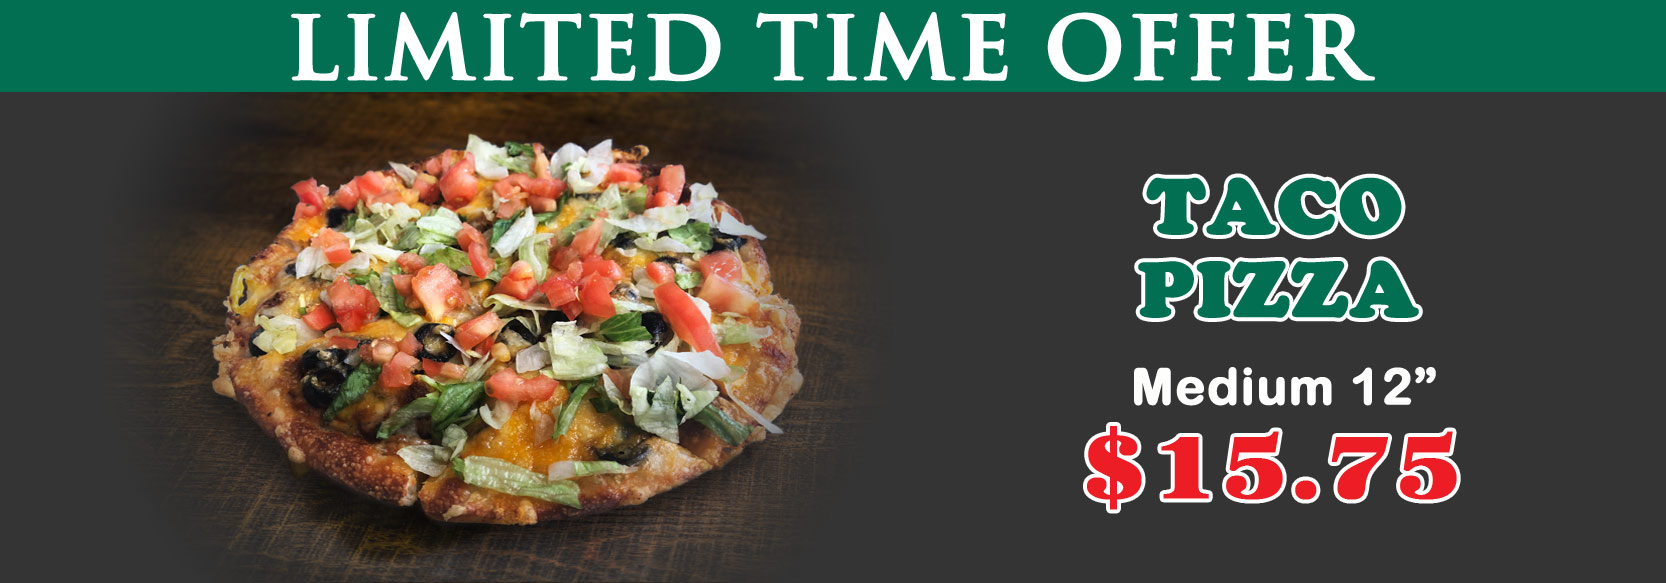 September 2019 Limited Time Offer - Taco Pizza